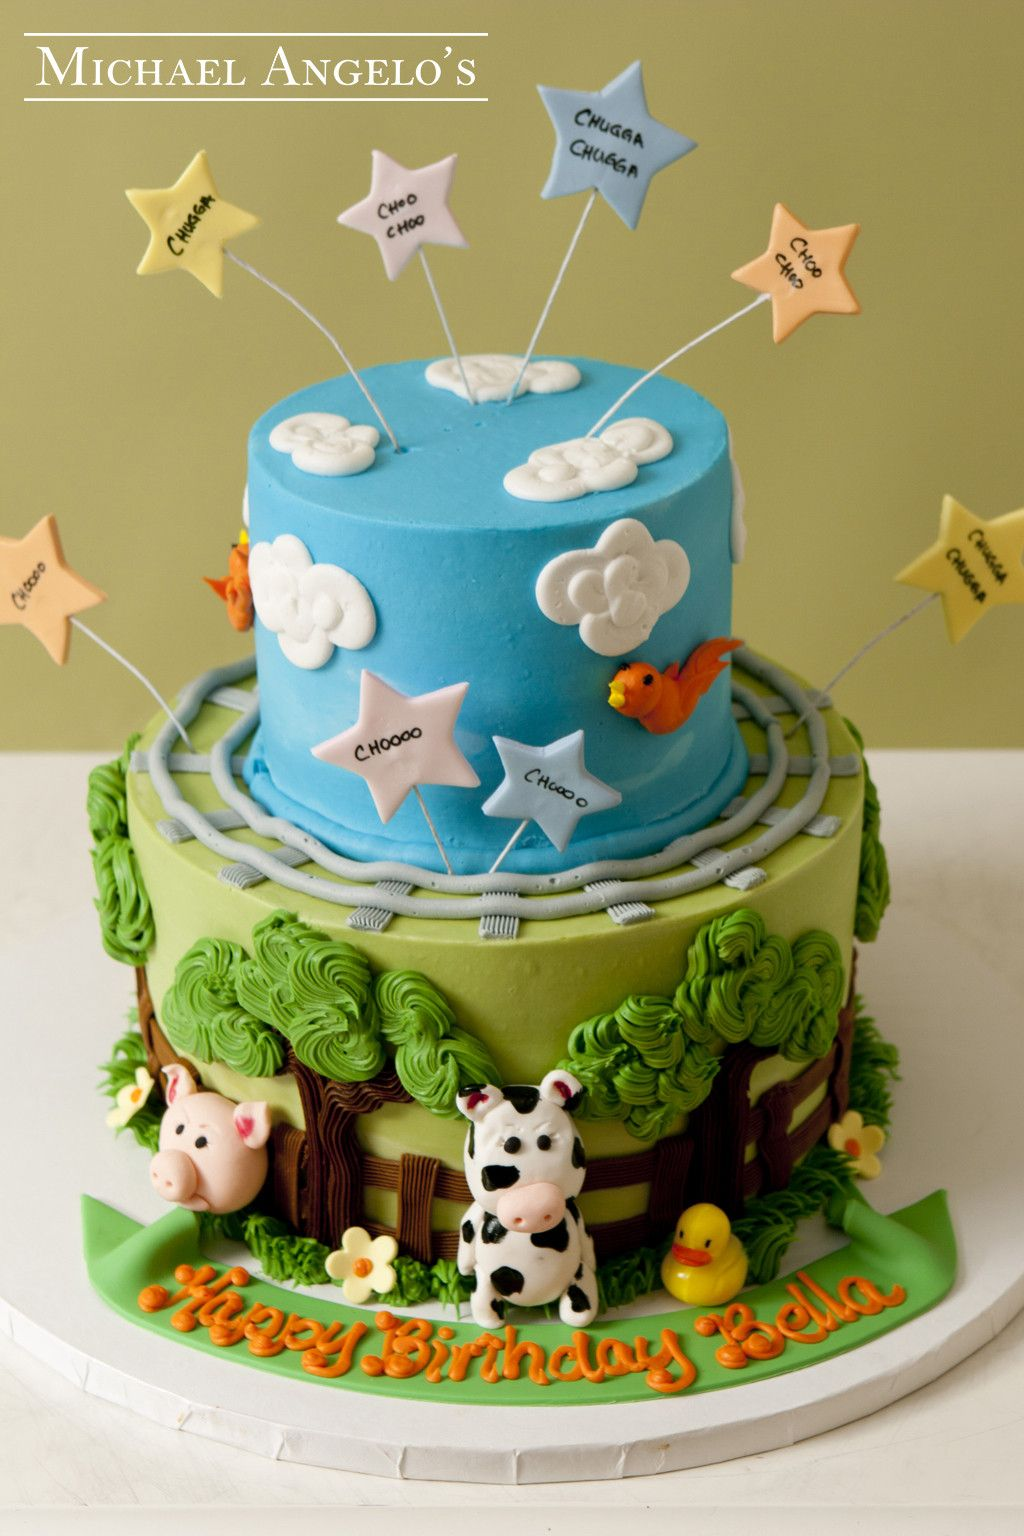 Blue Skies & Animals #24Animals  This creative design is iced in fondant with special decor all around for a farm scene with animals and blue skies. The cow and pig are hand made from gum paste along with the fence and railroad. The star cut-outs that stick out from the cake bring some depth and make it look really festive.